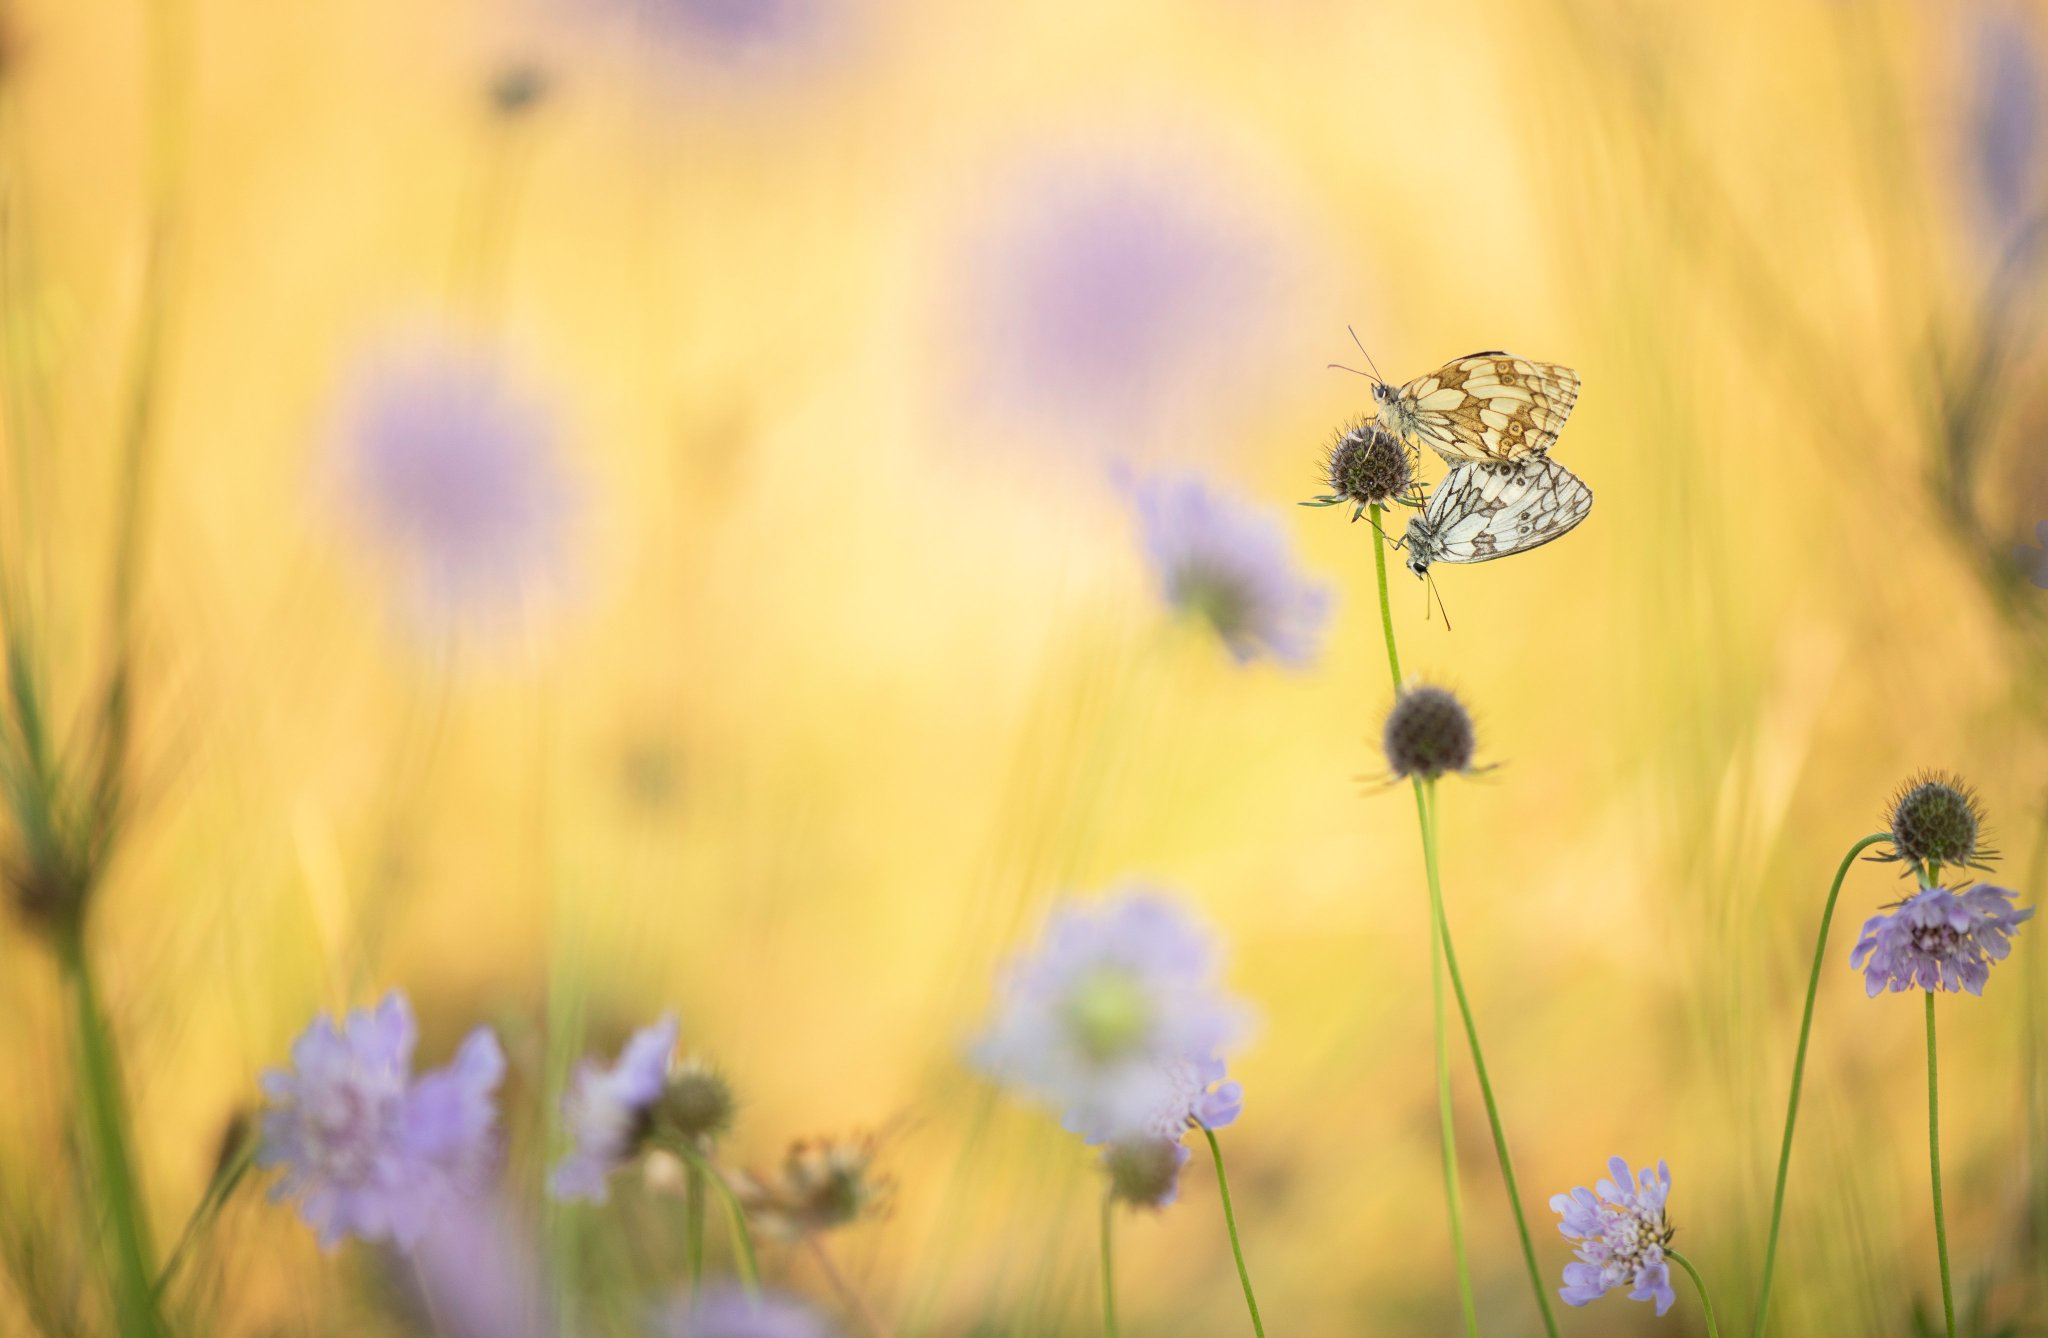 A pair of Marbled White butterflies in a lovely meadow filled with Devil's-bit scabious flowers @savebutterflies @WildlifeMag @BBCEarth @BBCSpringwatch https://t.co/0XuB3qN1Ga